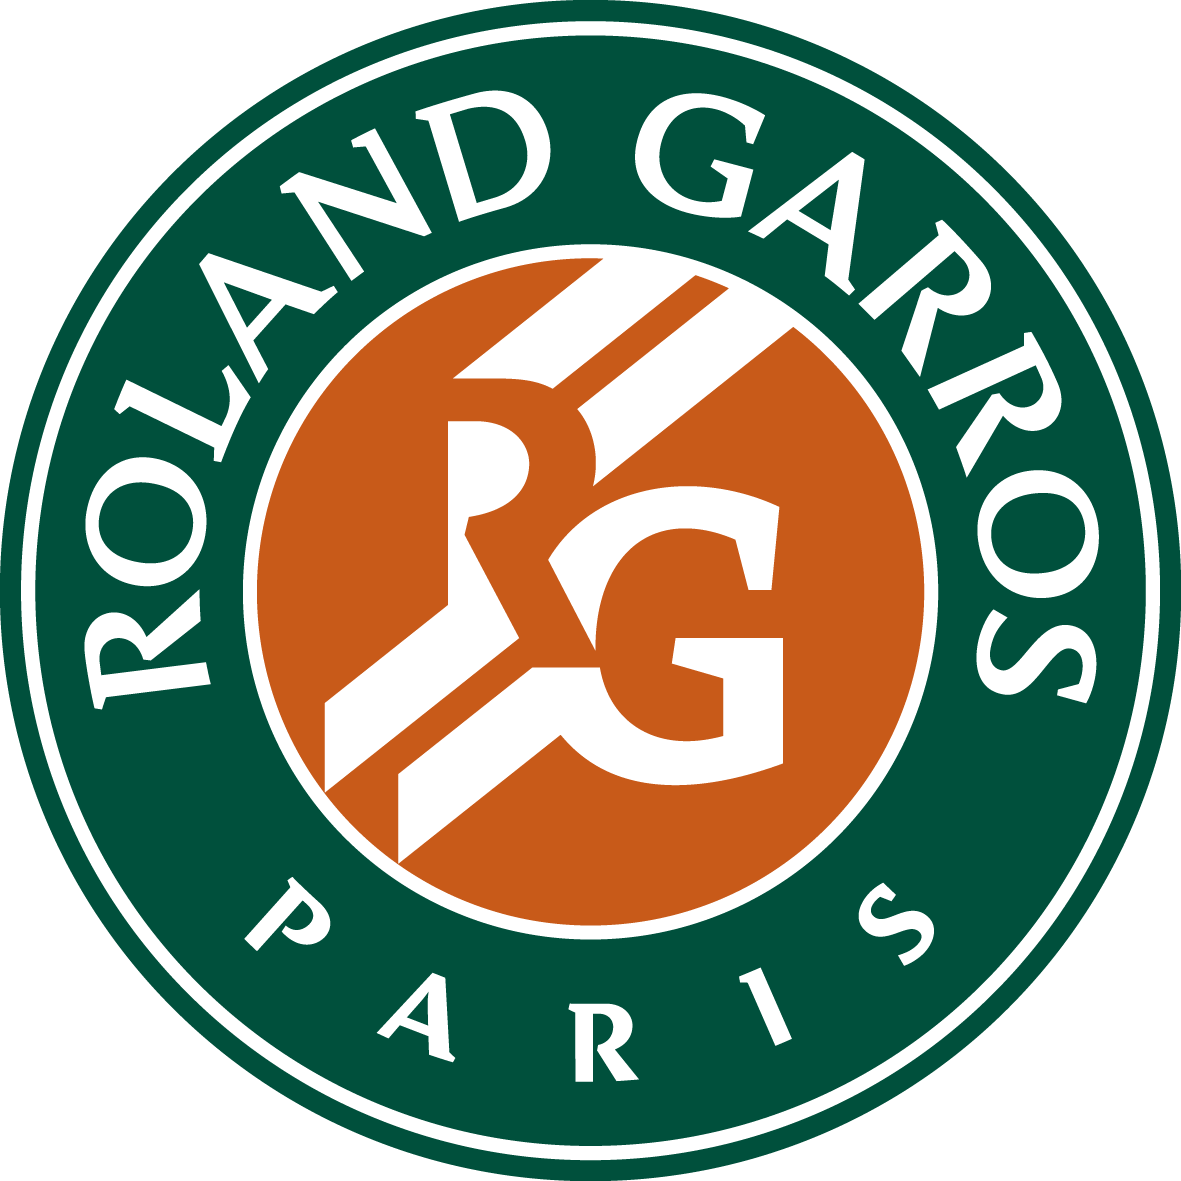 French Open logo, © French Open